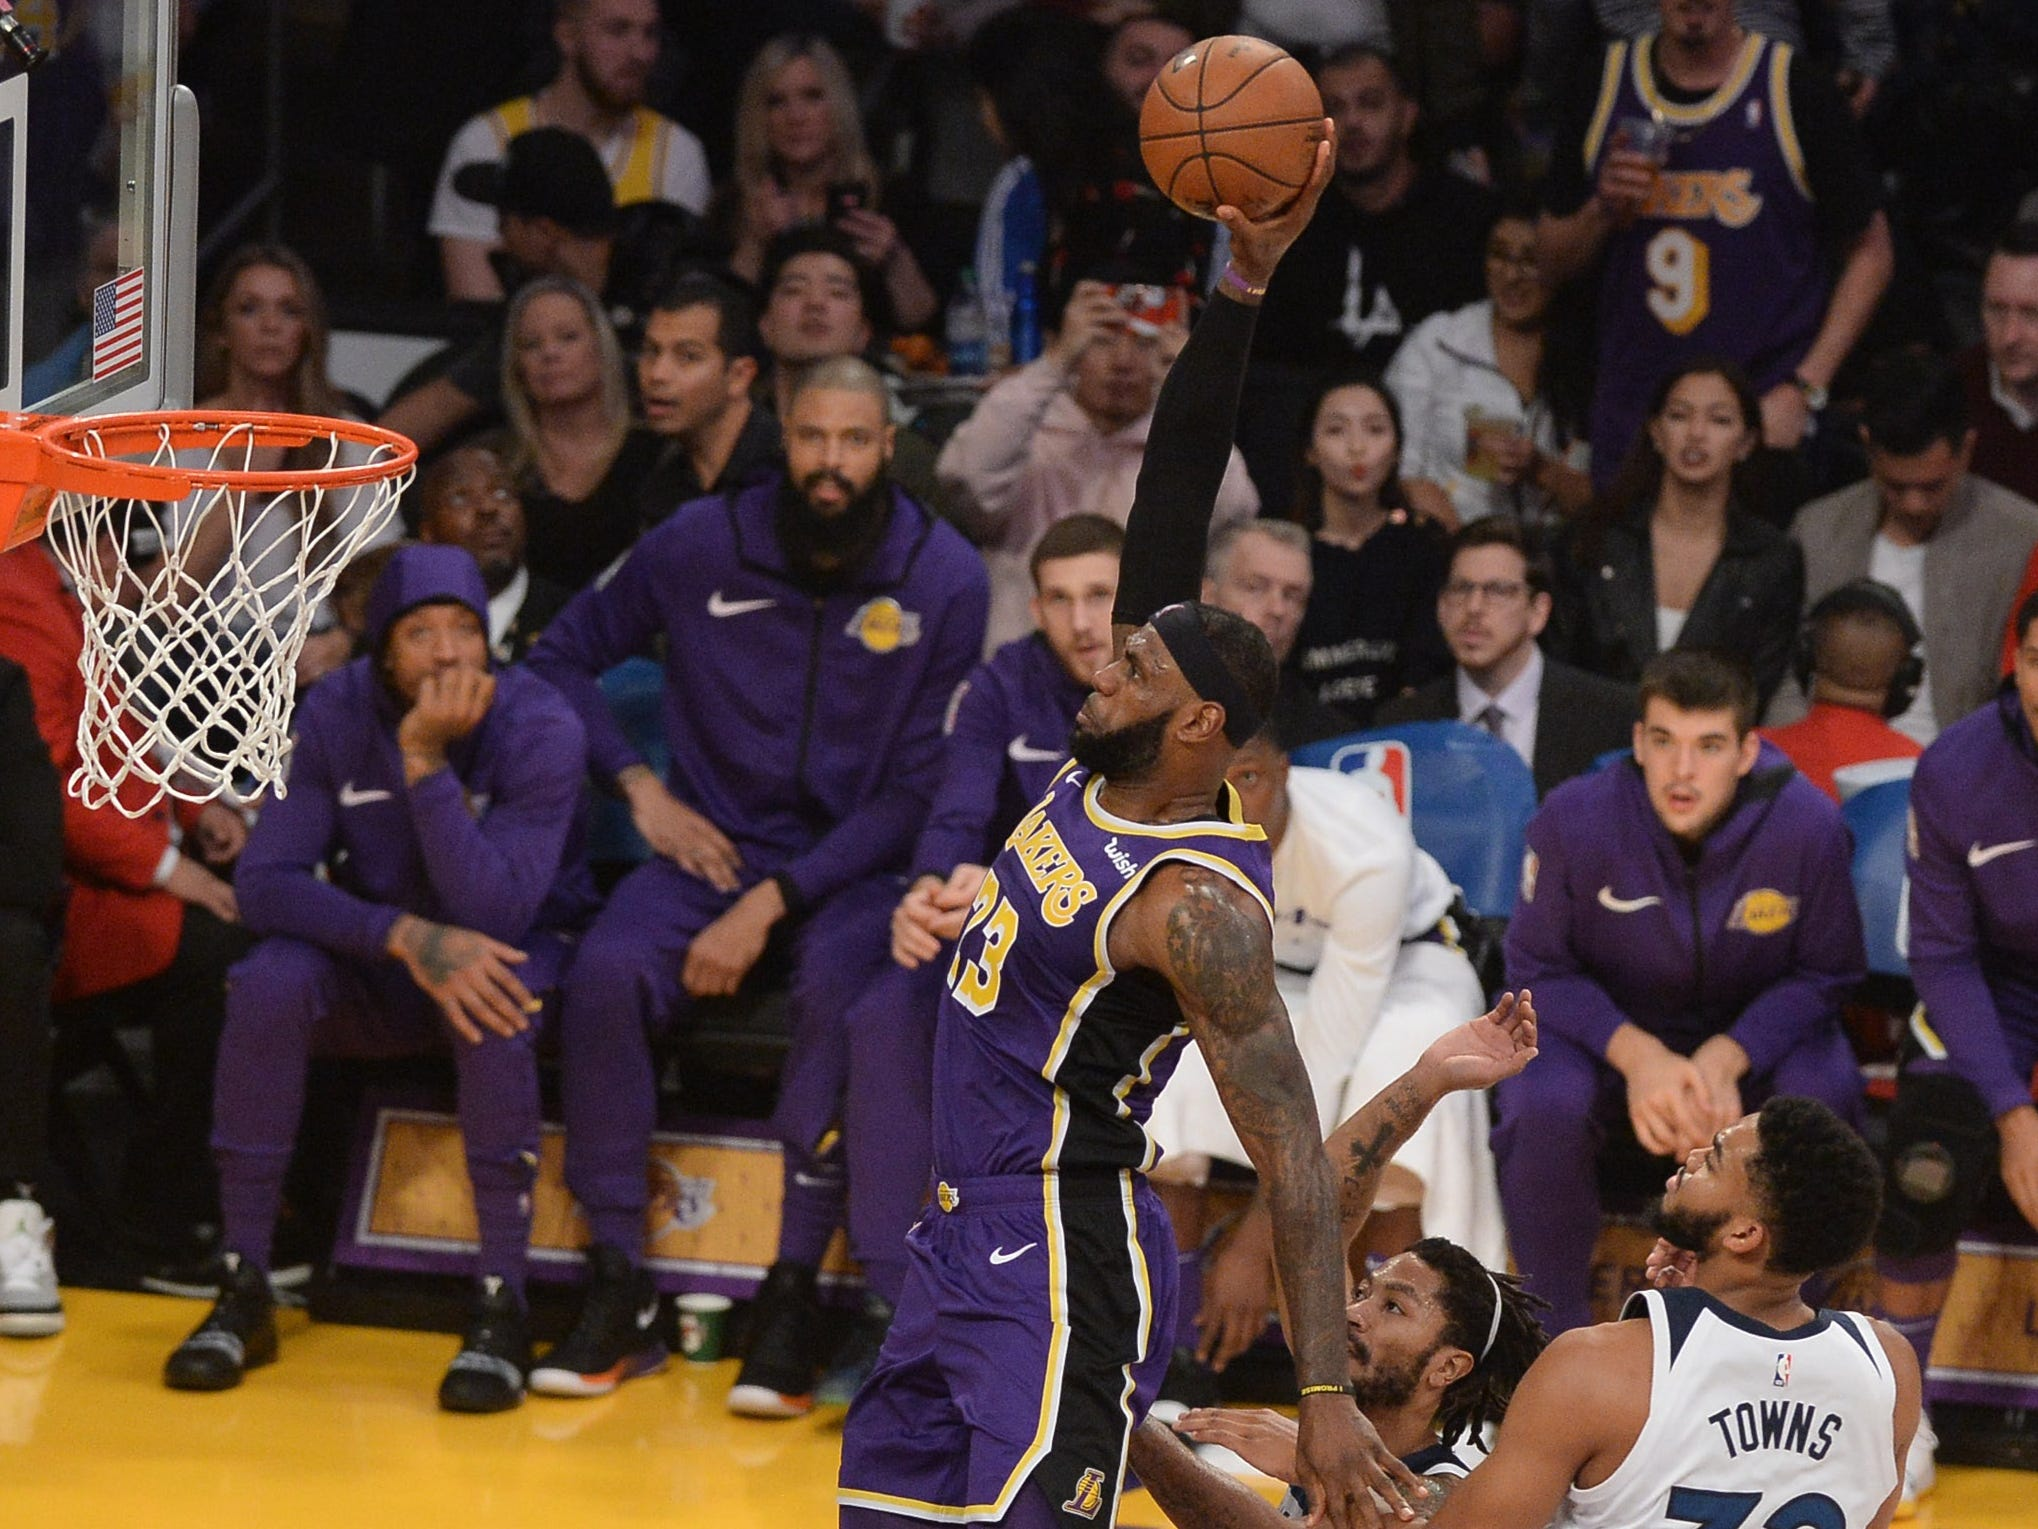 Nov. 7: Lakers forward LeBron James glides through the lane for a one-handed slam during the first half against the T'wolves.